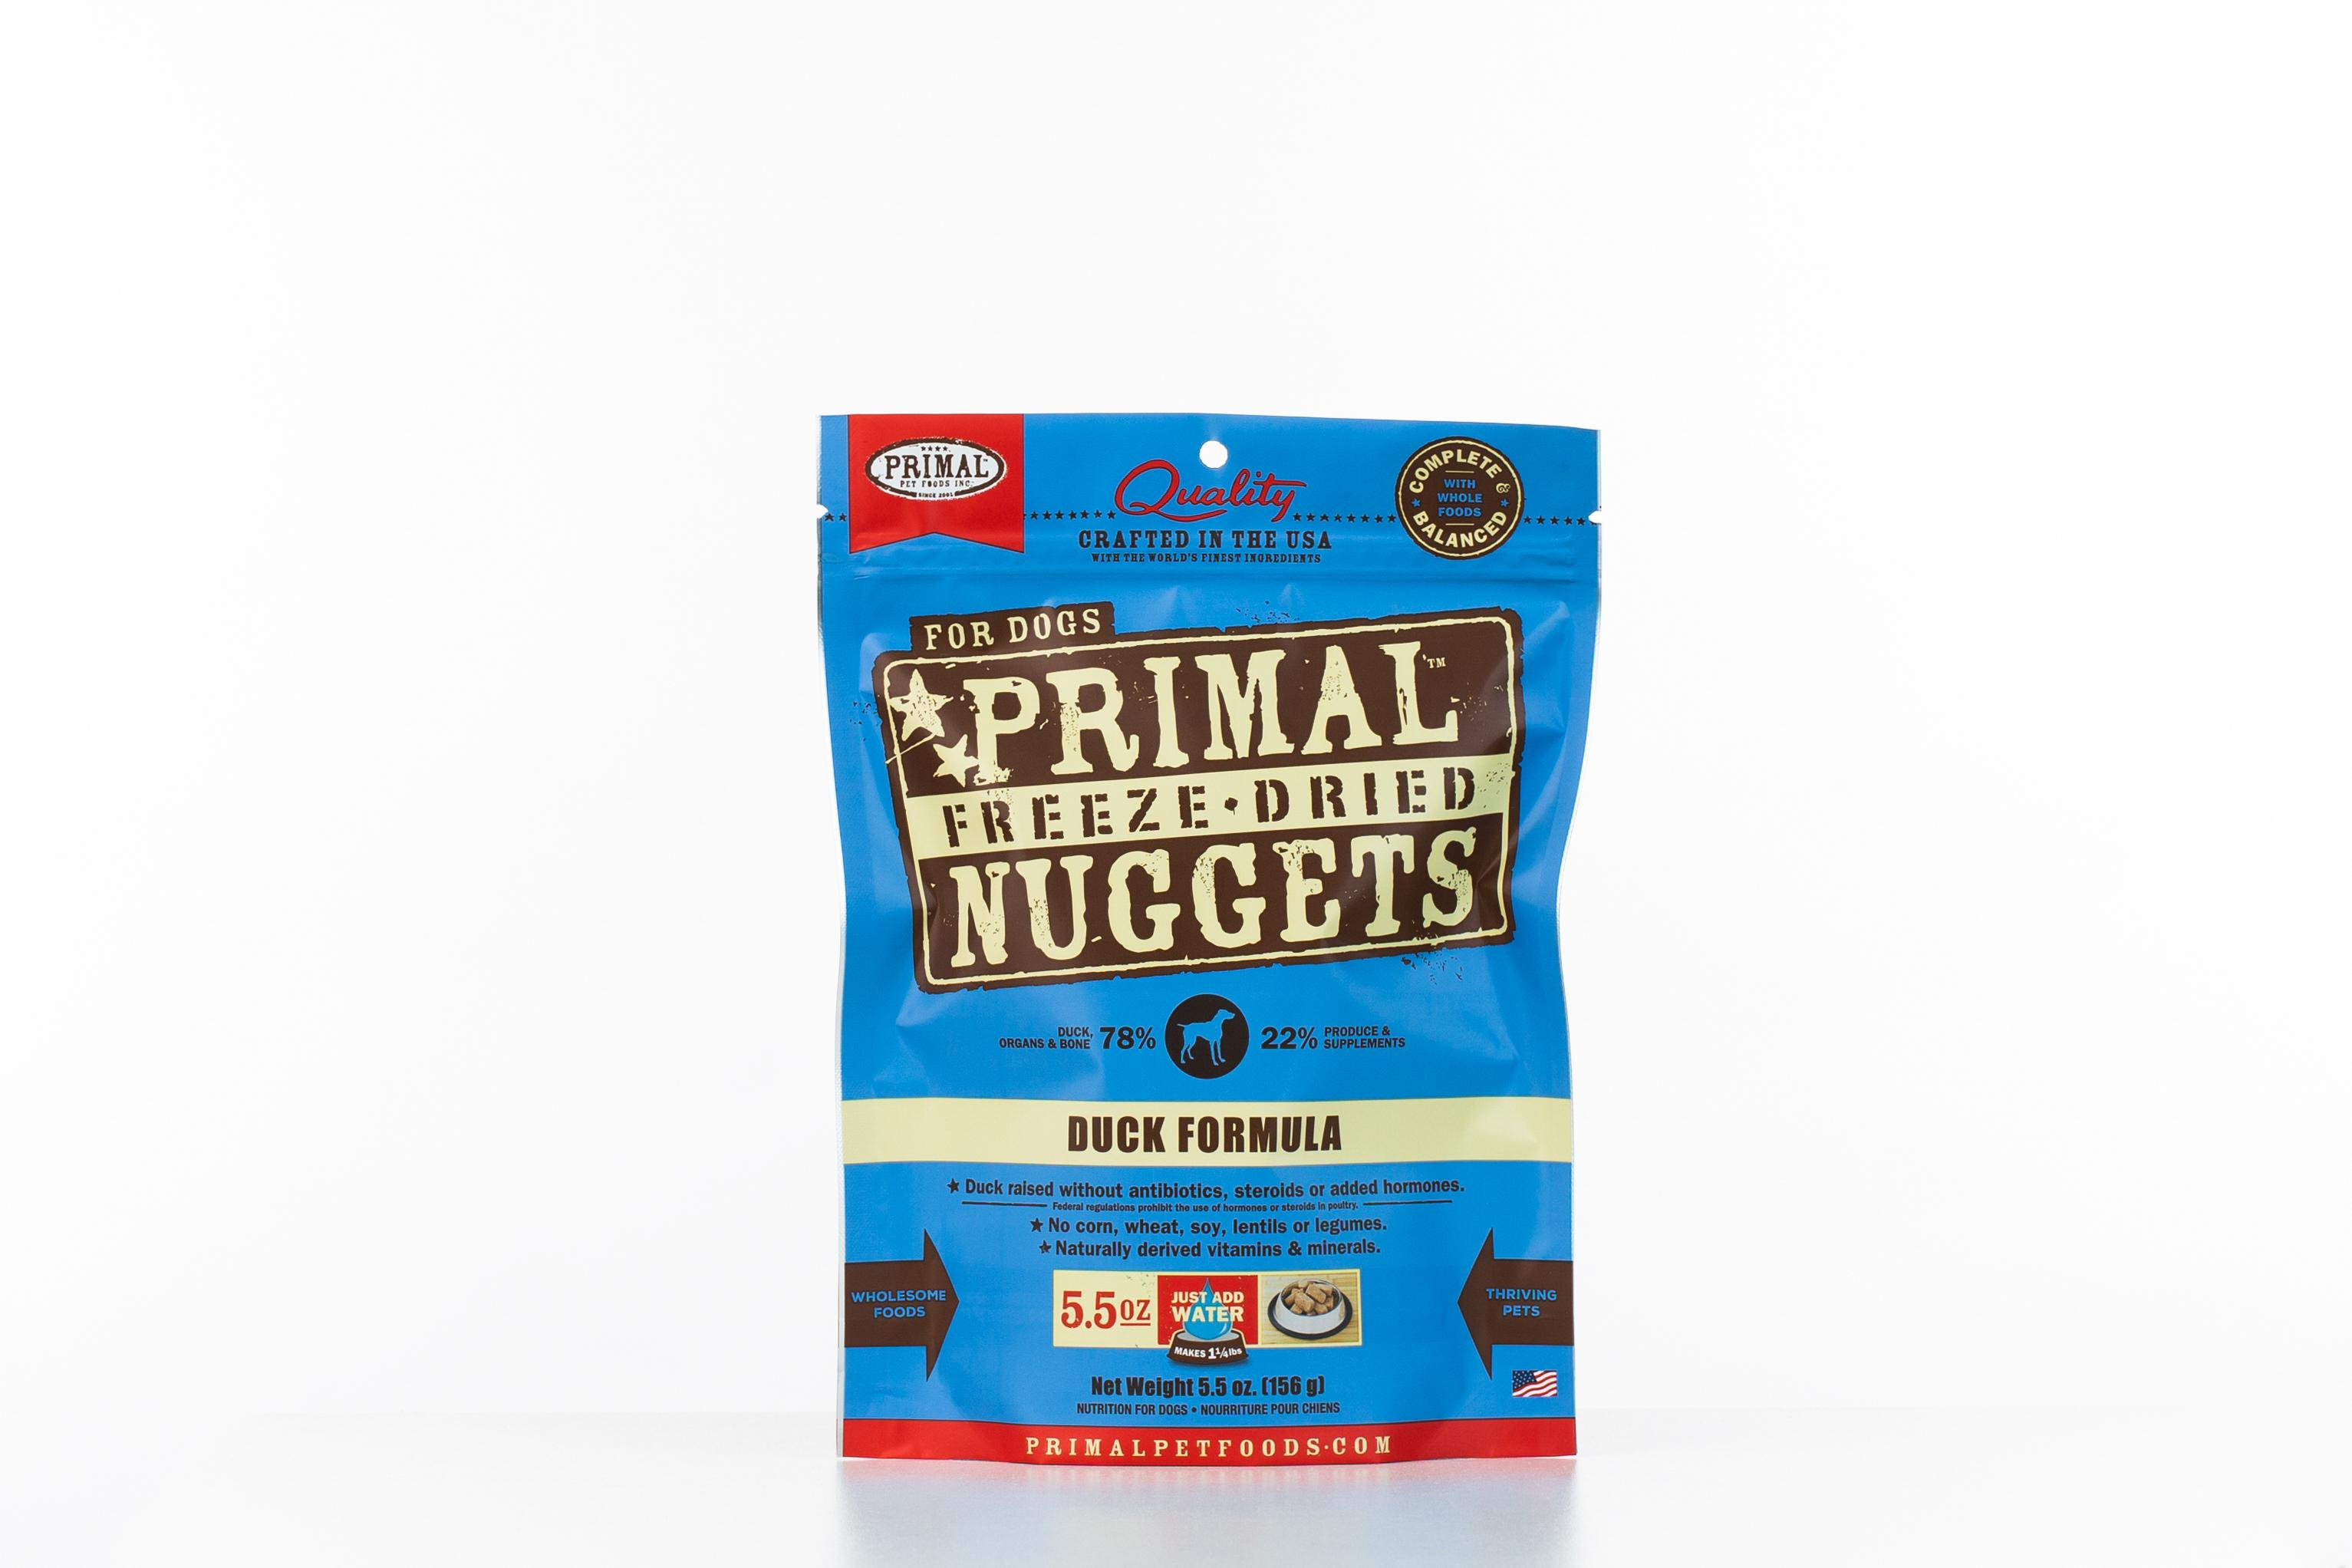 Primal Raw Freeze-Dried Nuggets Duck Formula Dog Food Image